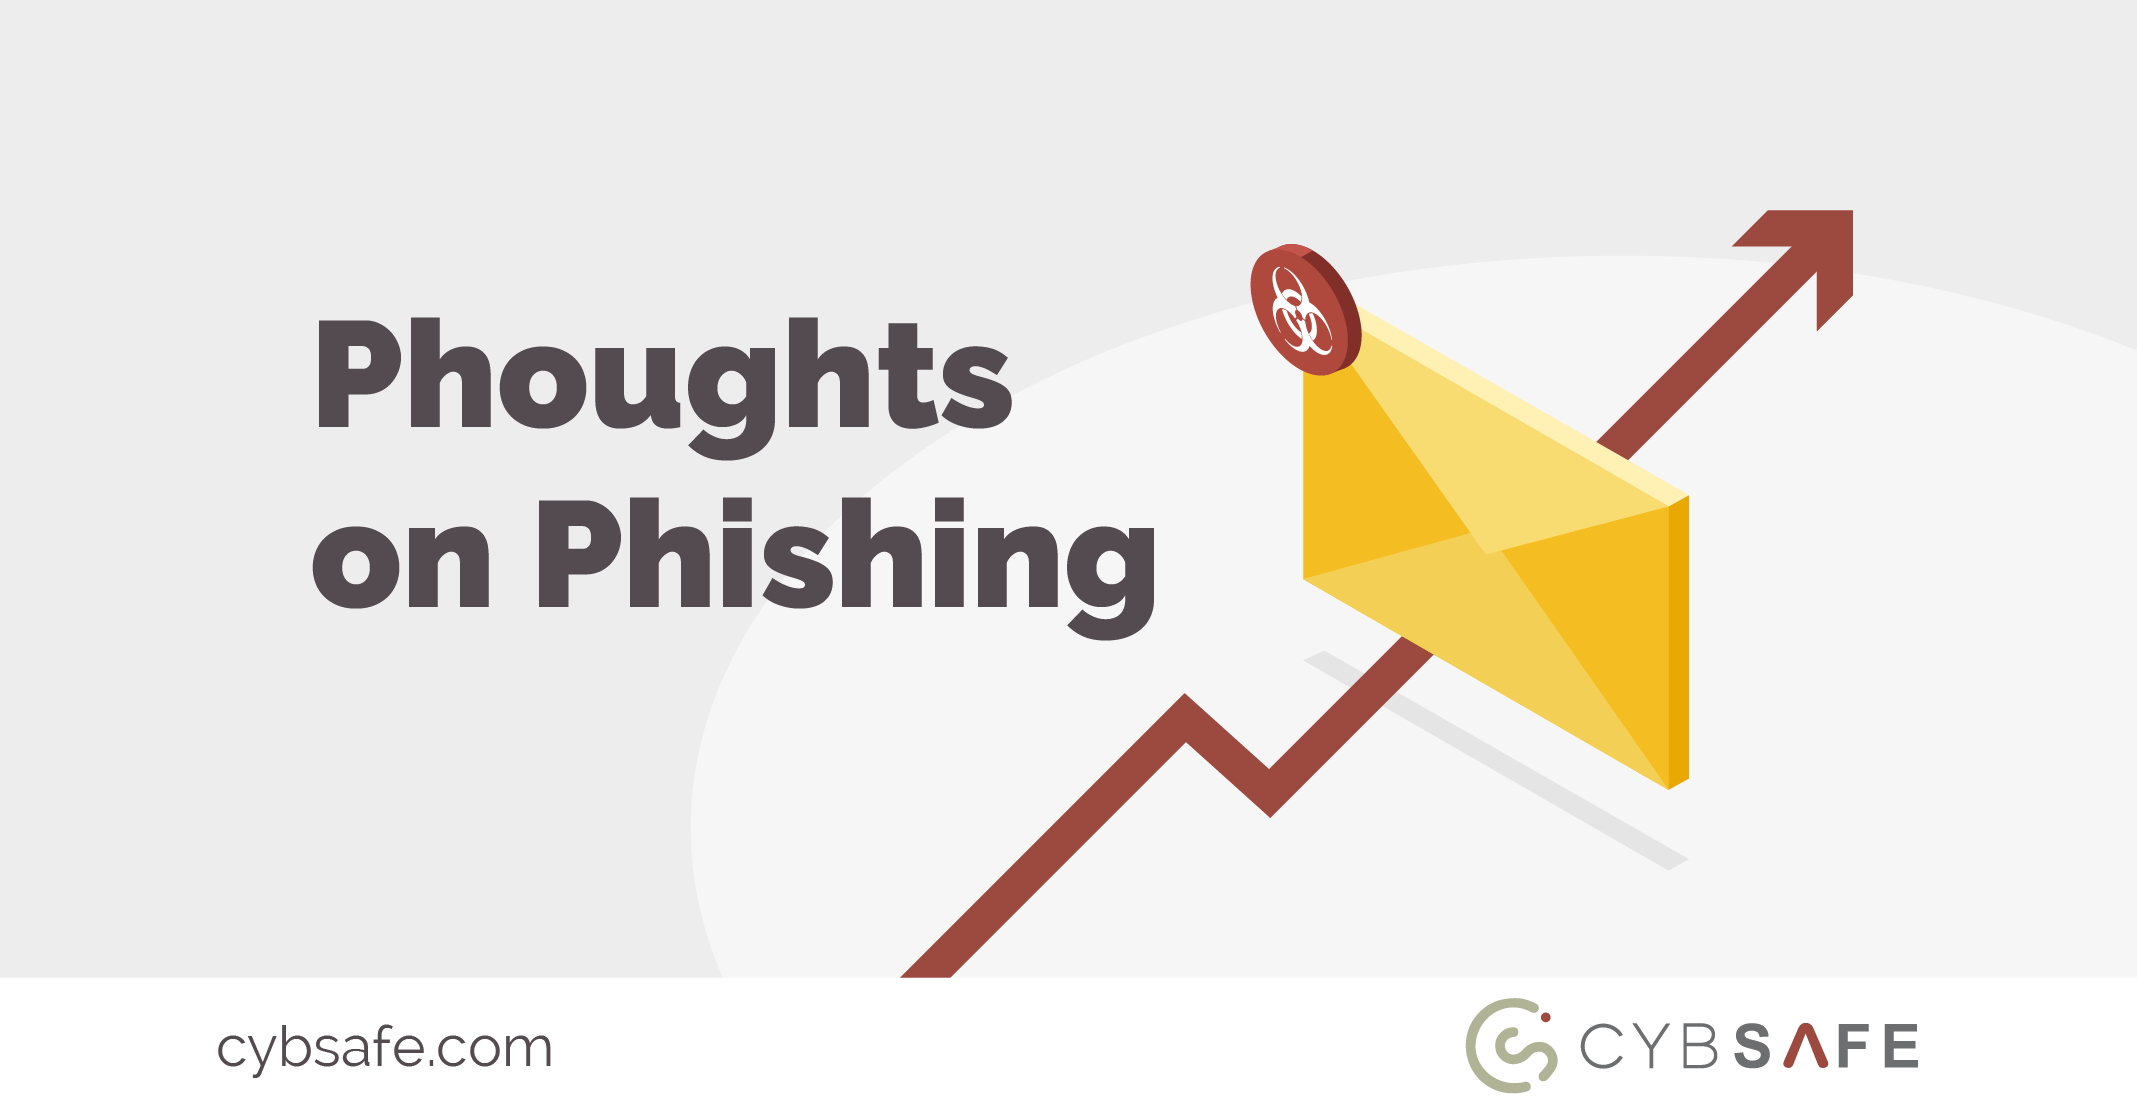 phishing blog image